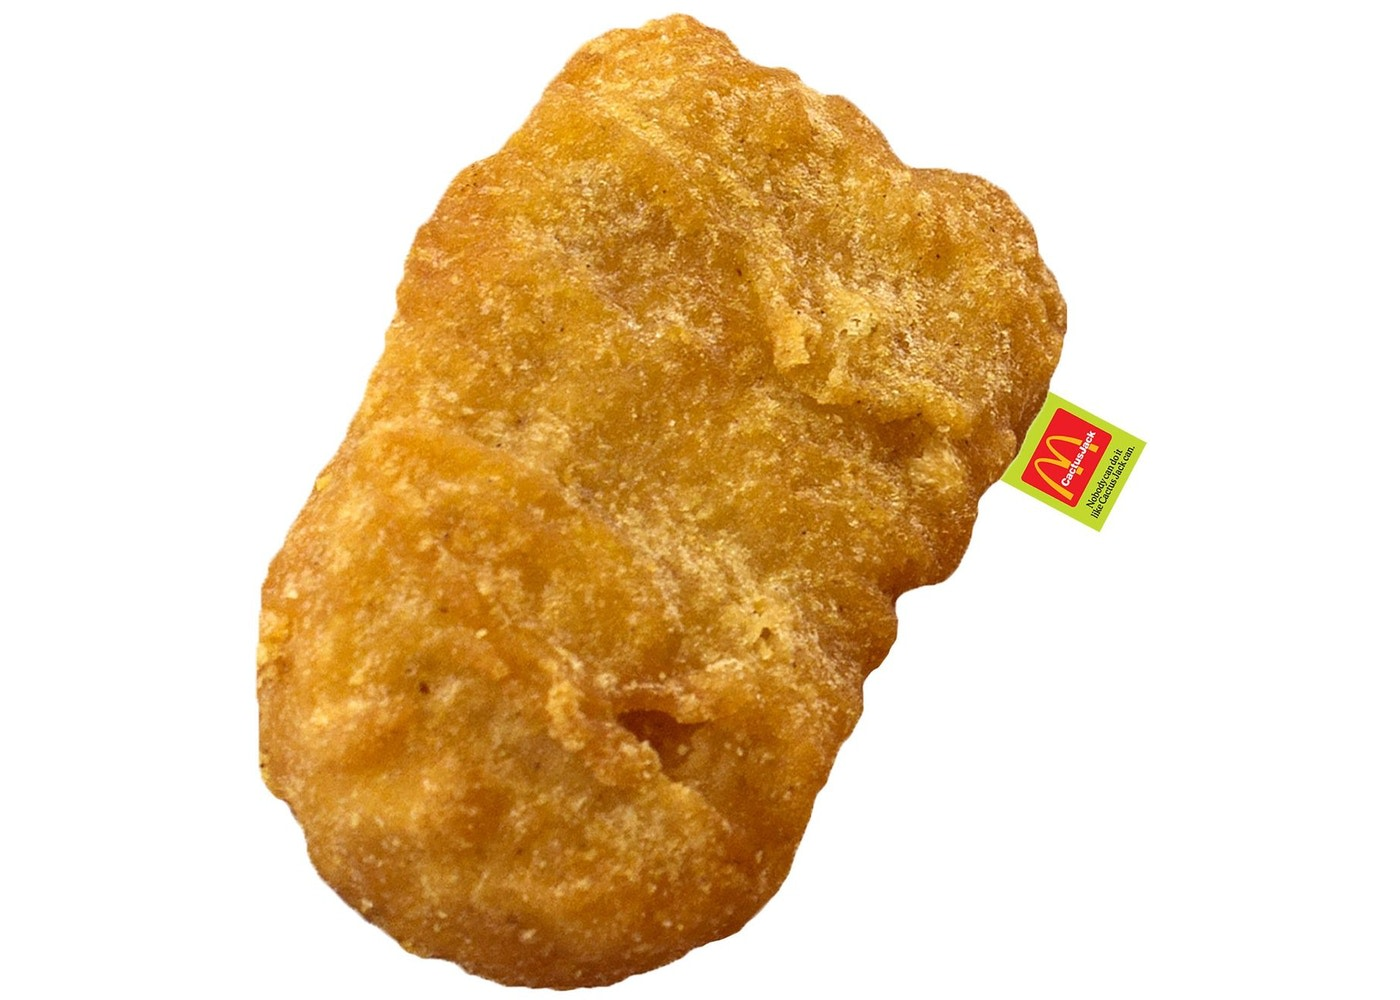 Travis Scott x McDonald's McNugget Body Pillow